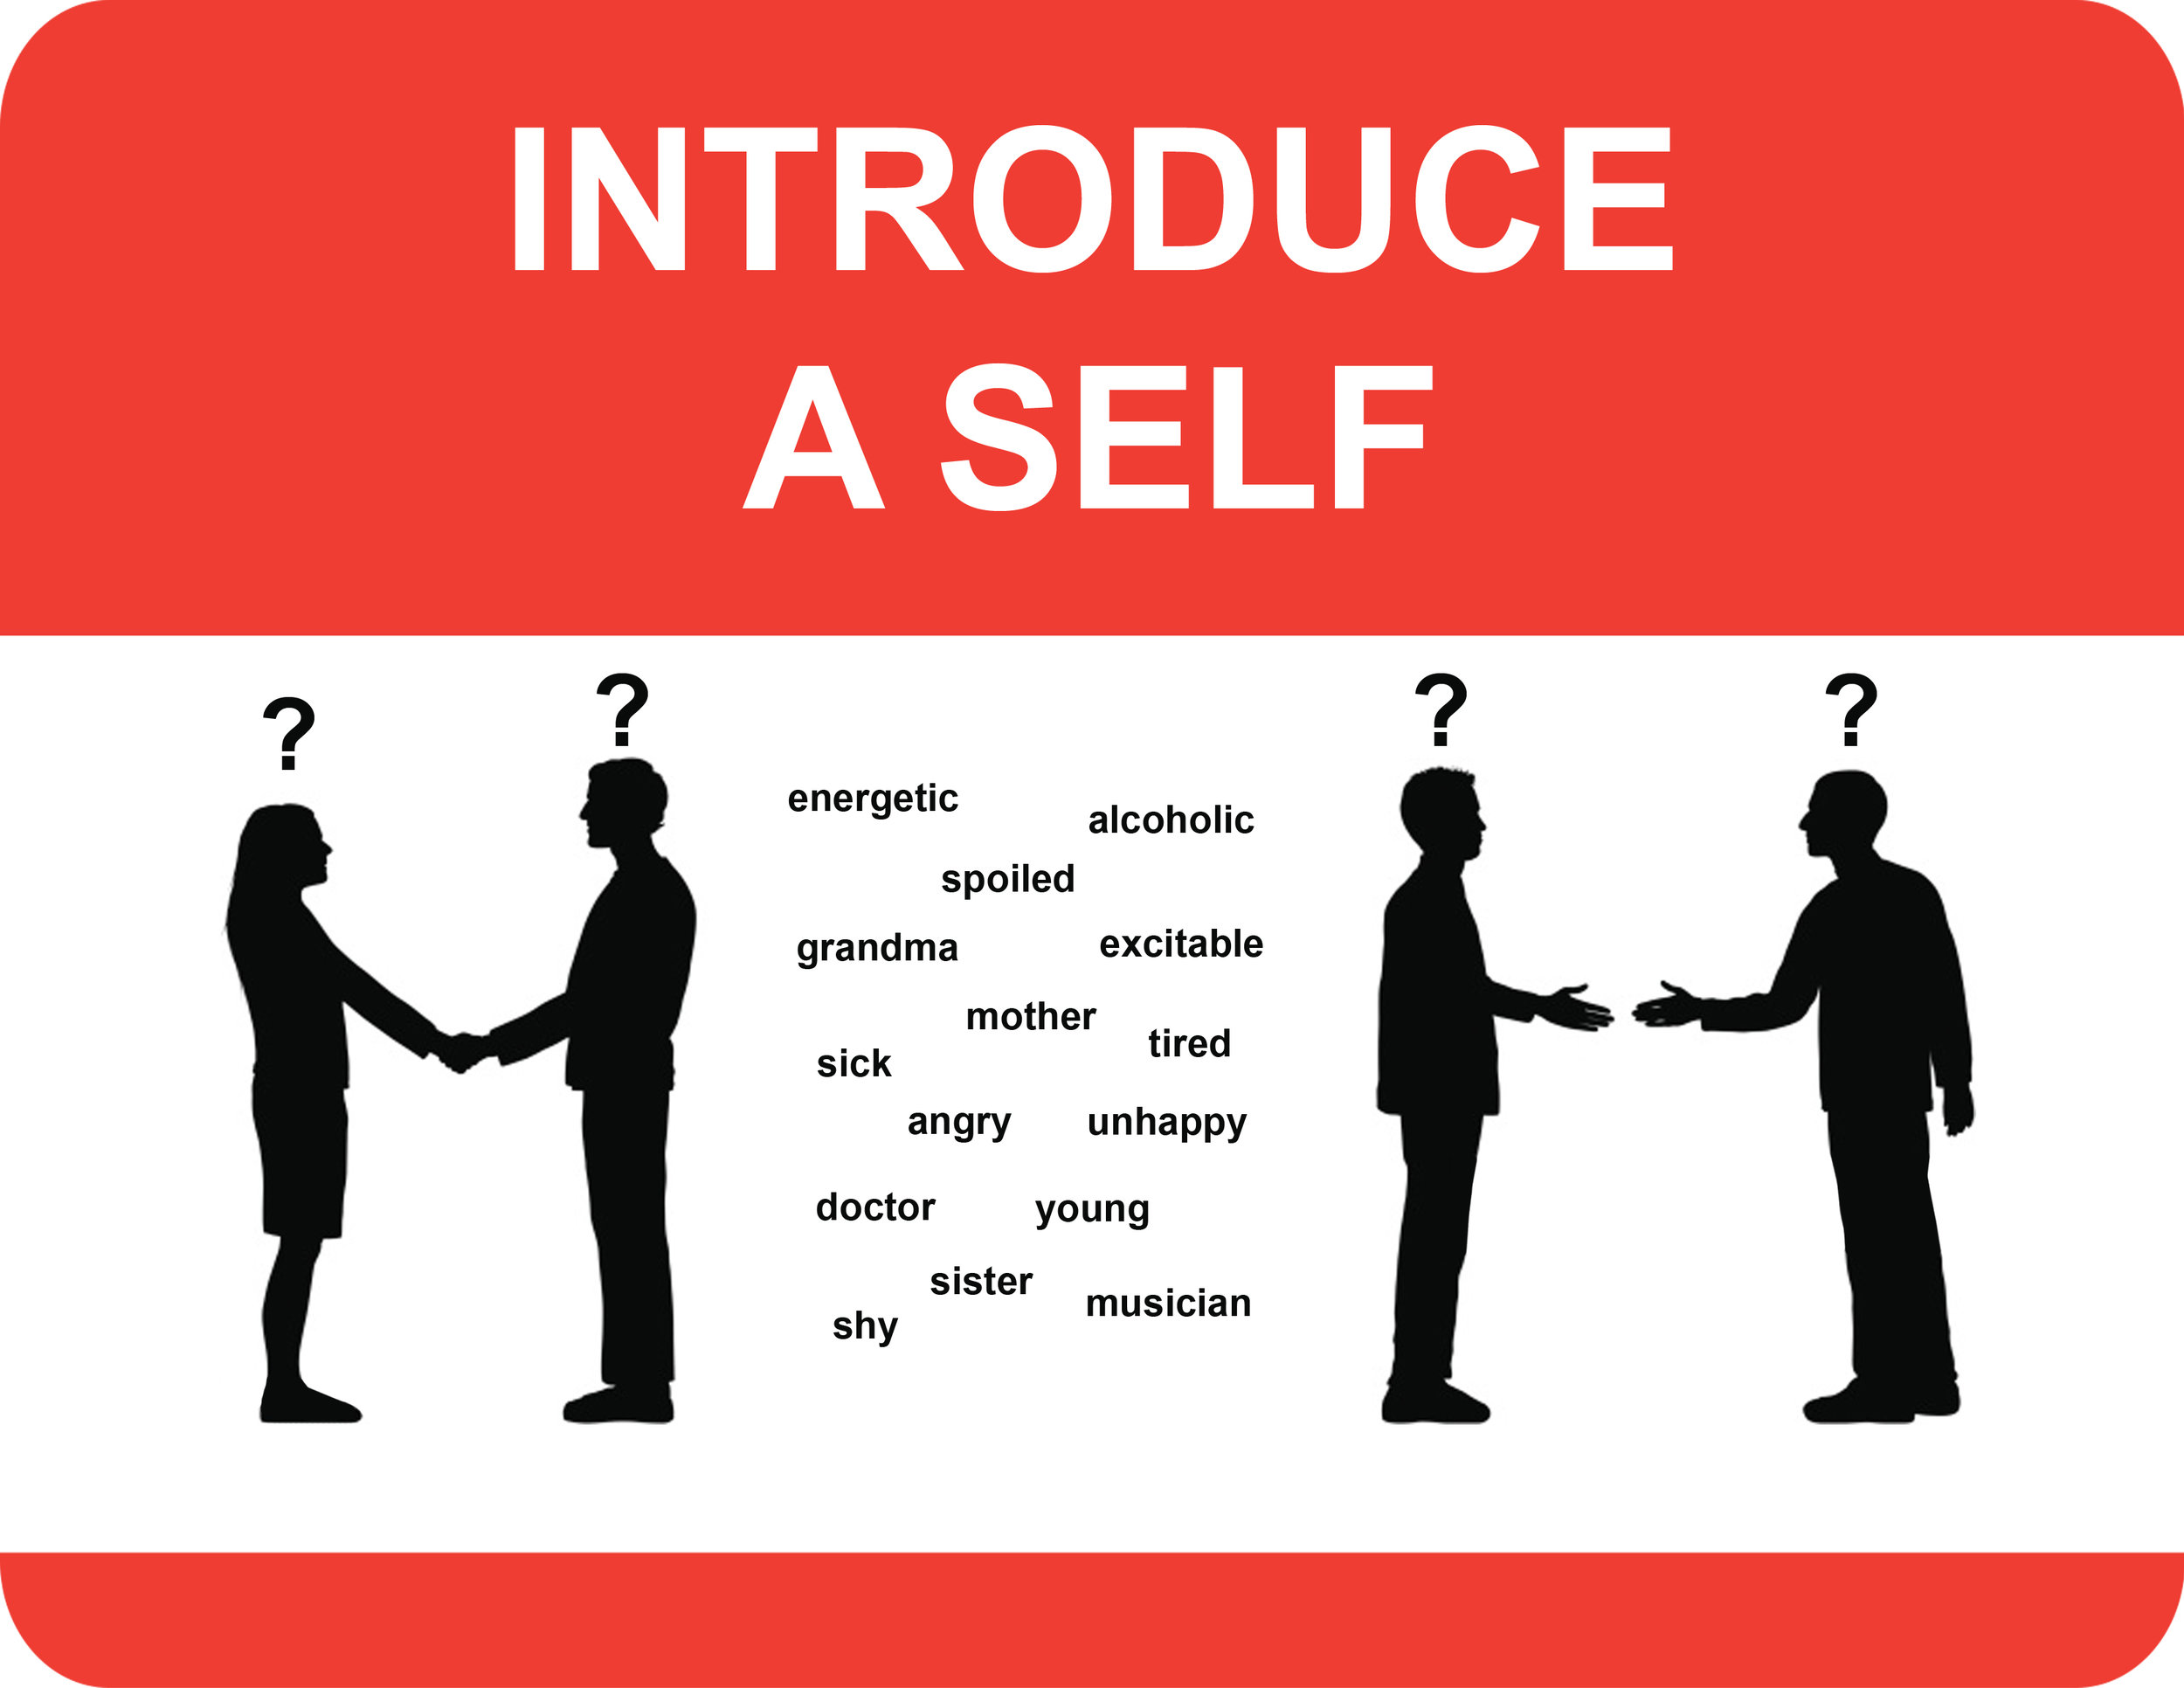 In Introduce A Self, rotating HIT performers create a cast of engaging characters and draw you into their world. Meet fascinating new imaginary people in this hour-long character-based show!  $5 per show, or only $10 buys you an entire night of laughs. BYOB!!